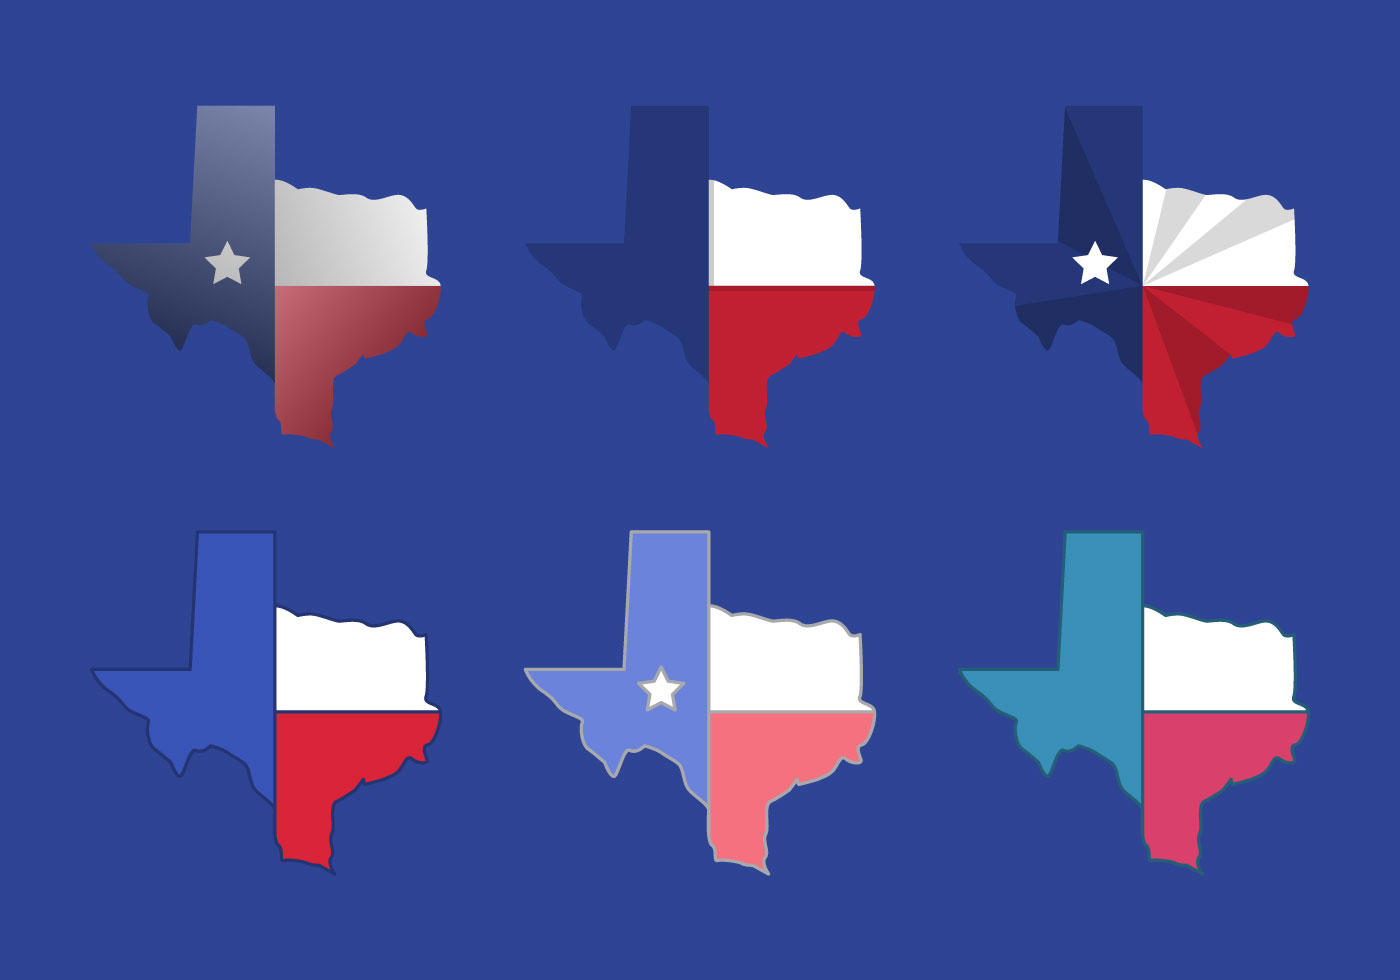 Texas Map Vector Icons 3 Download Free Vector Art Stock Graphics Amp Images